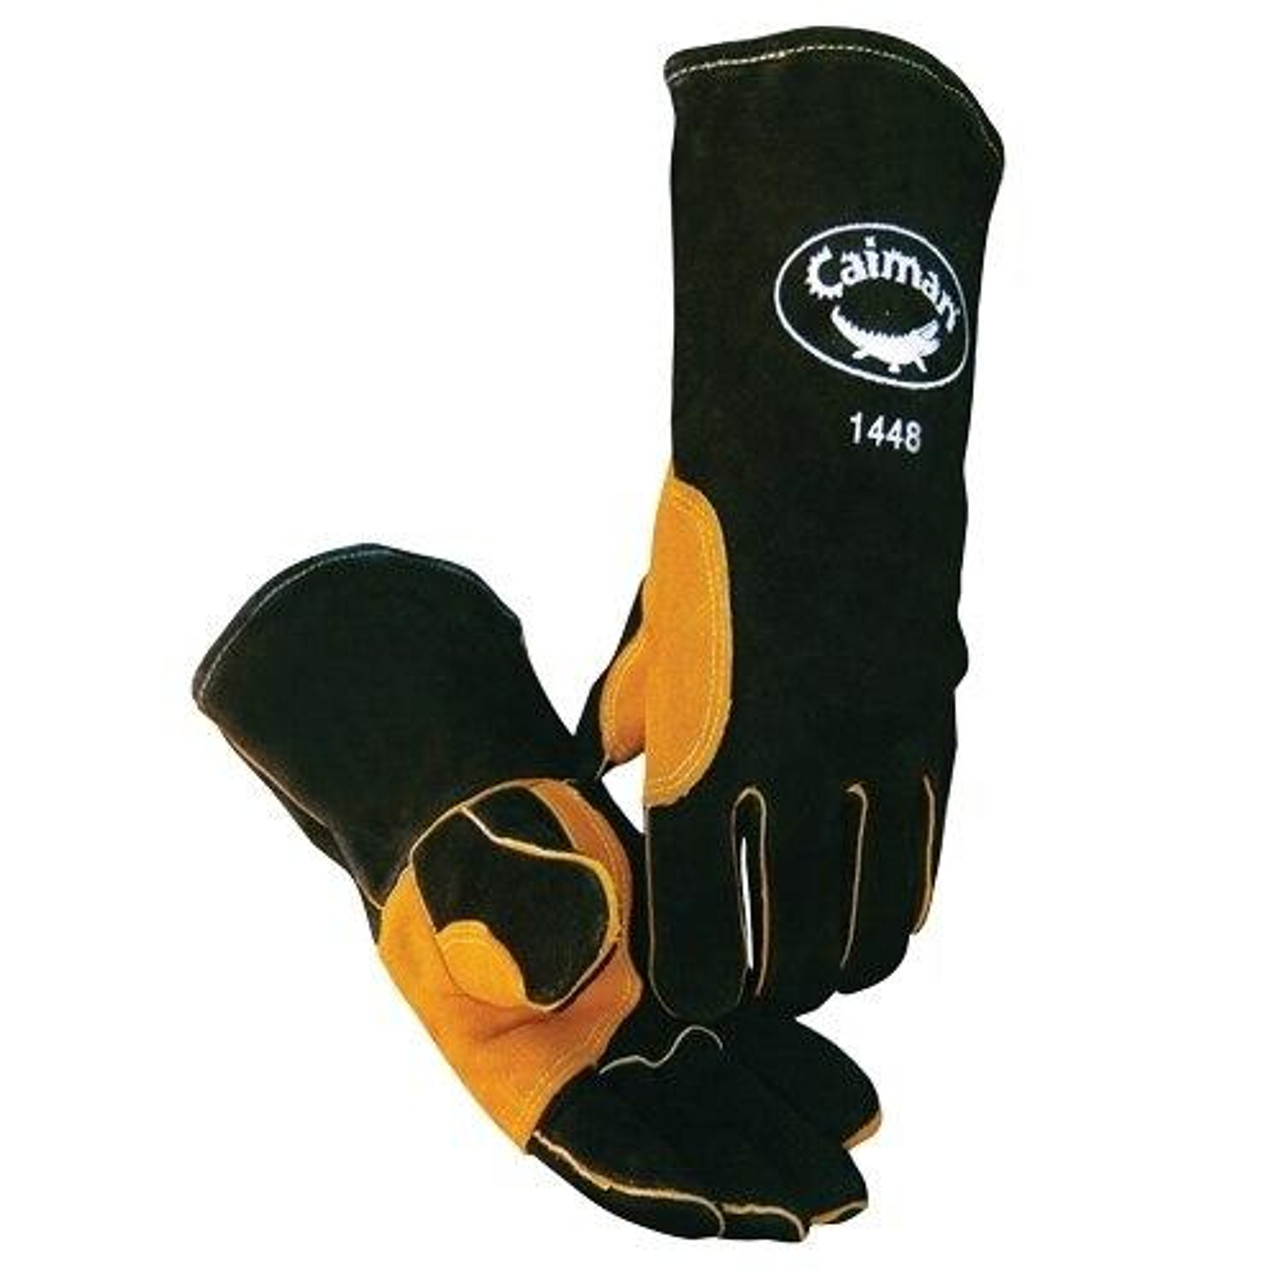 Caiman 1448 Natural Thumb Heatflect Premium Welding Gloves